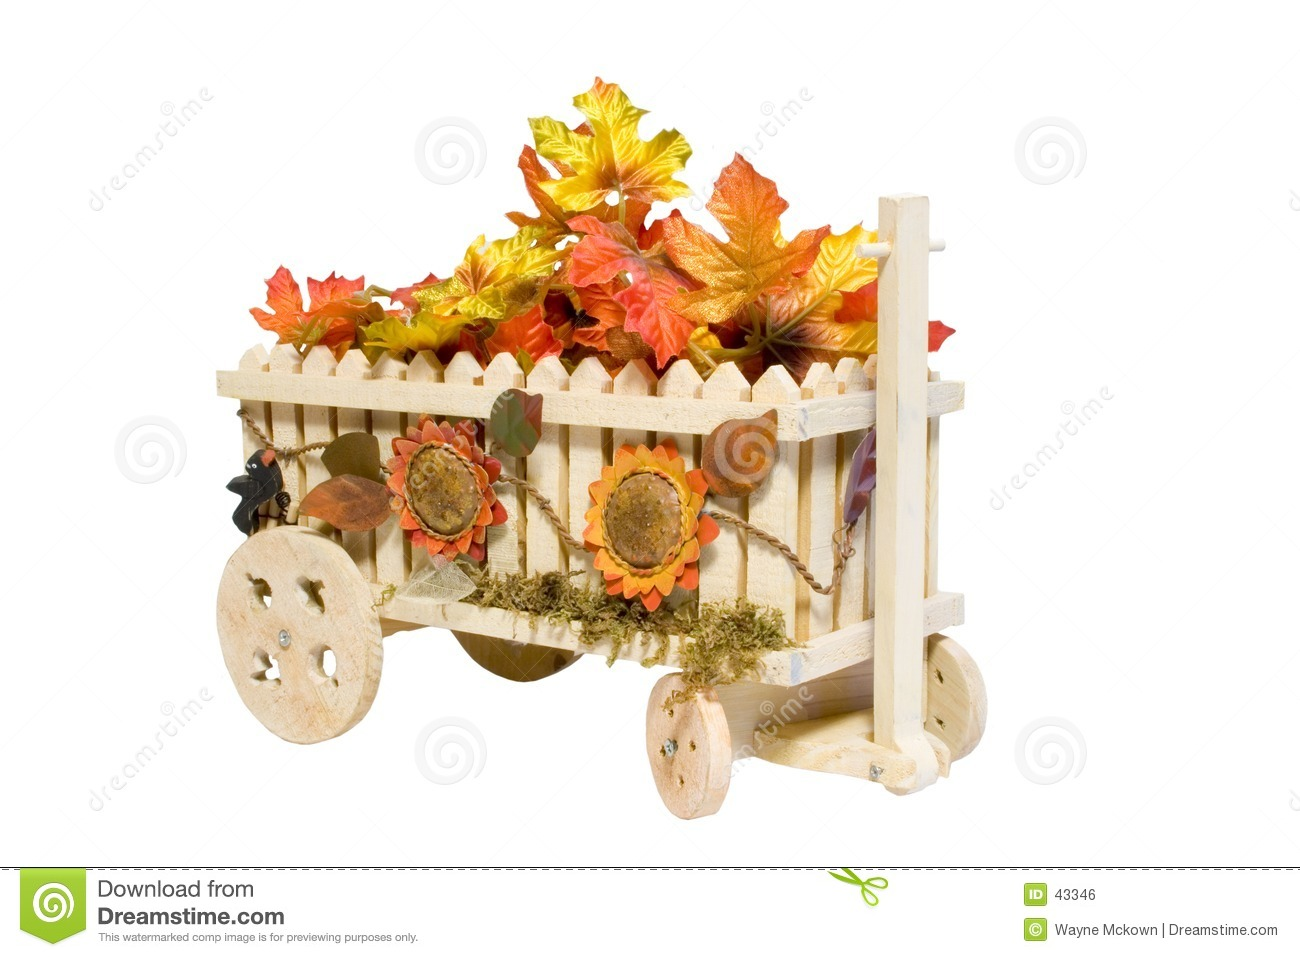 The Flower Wagon.